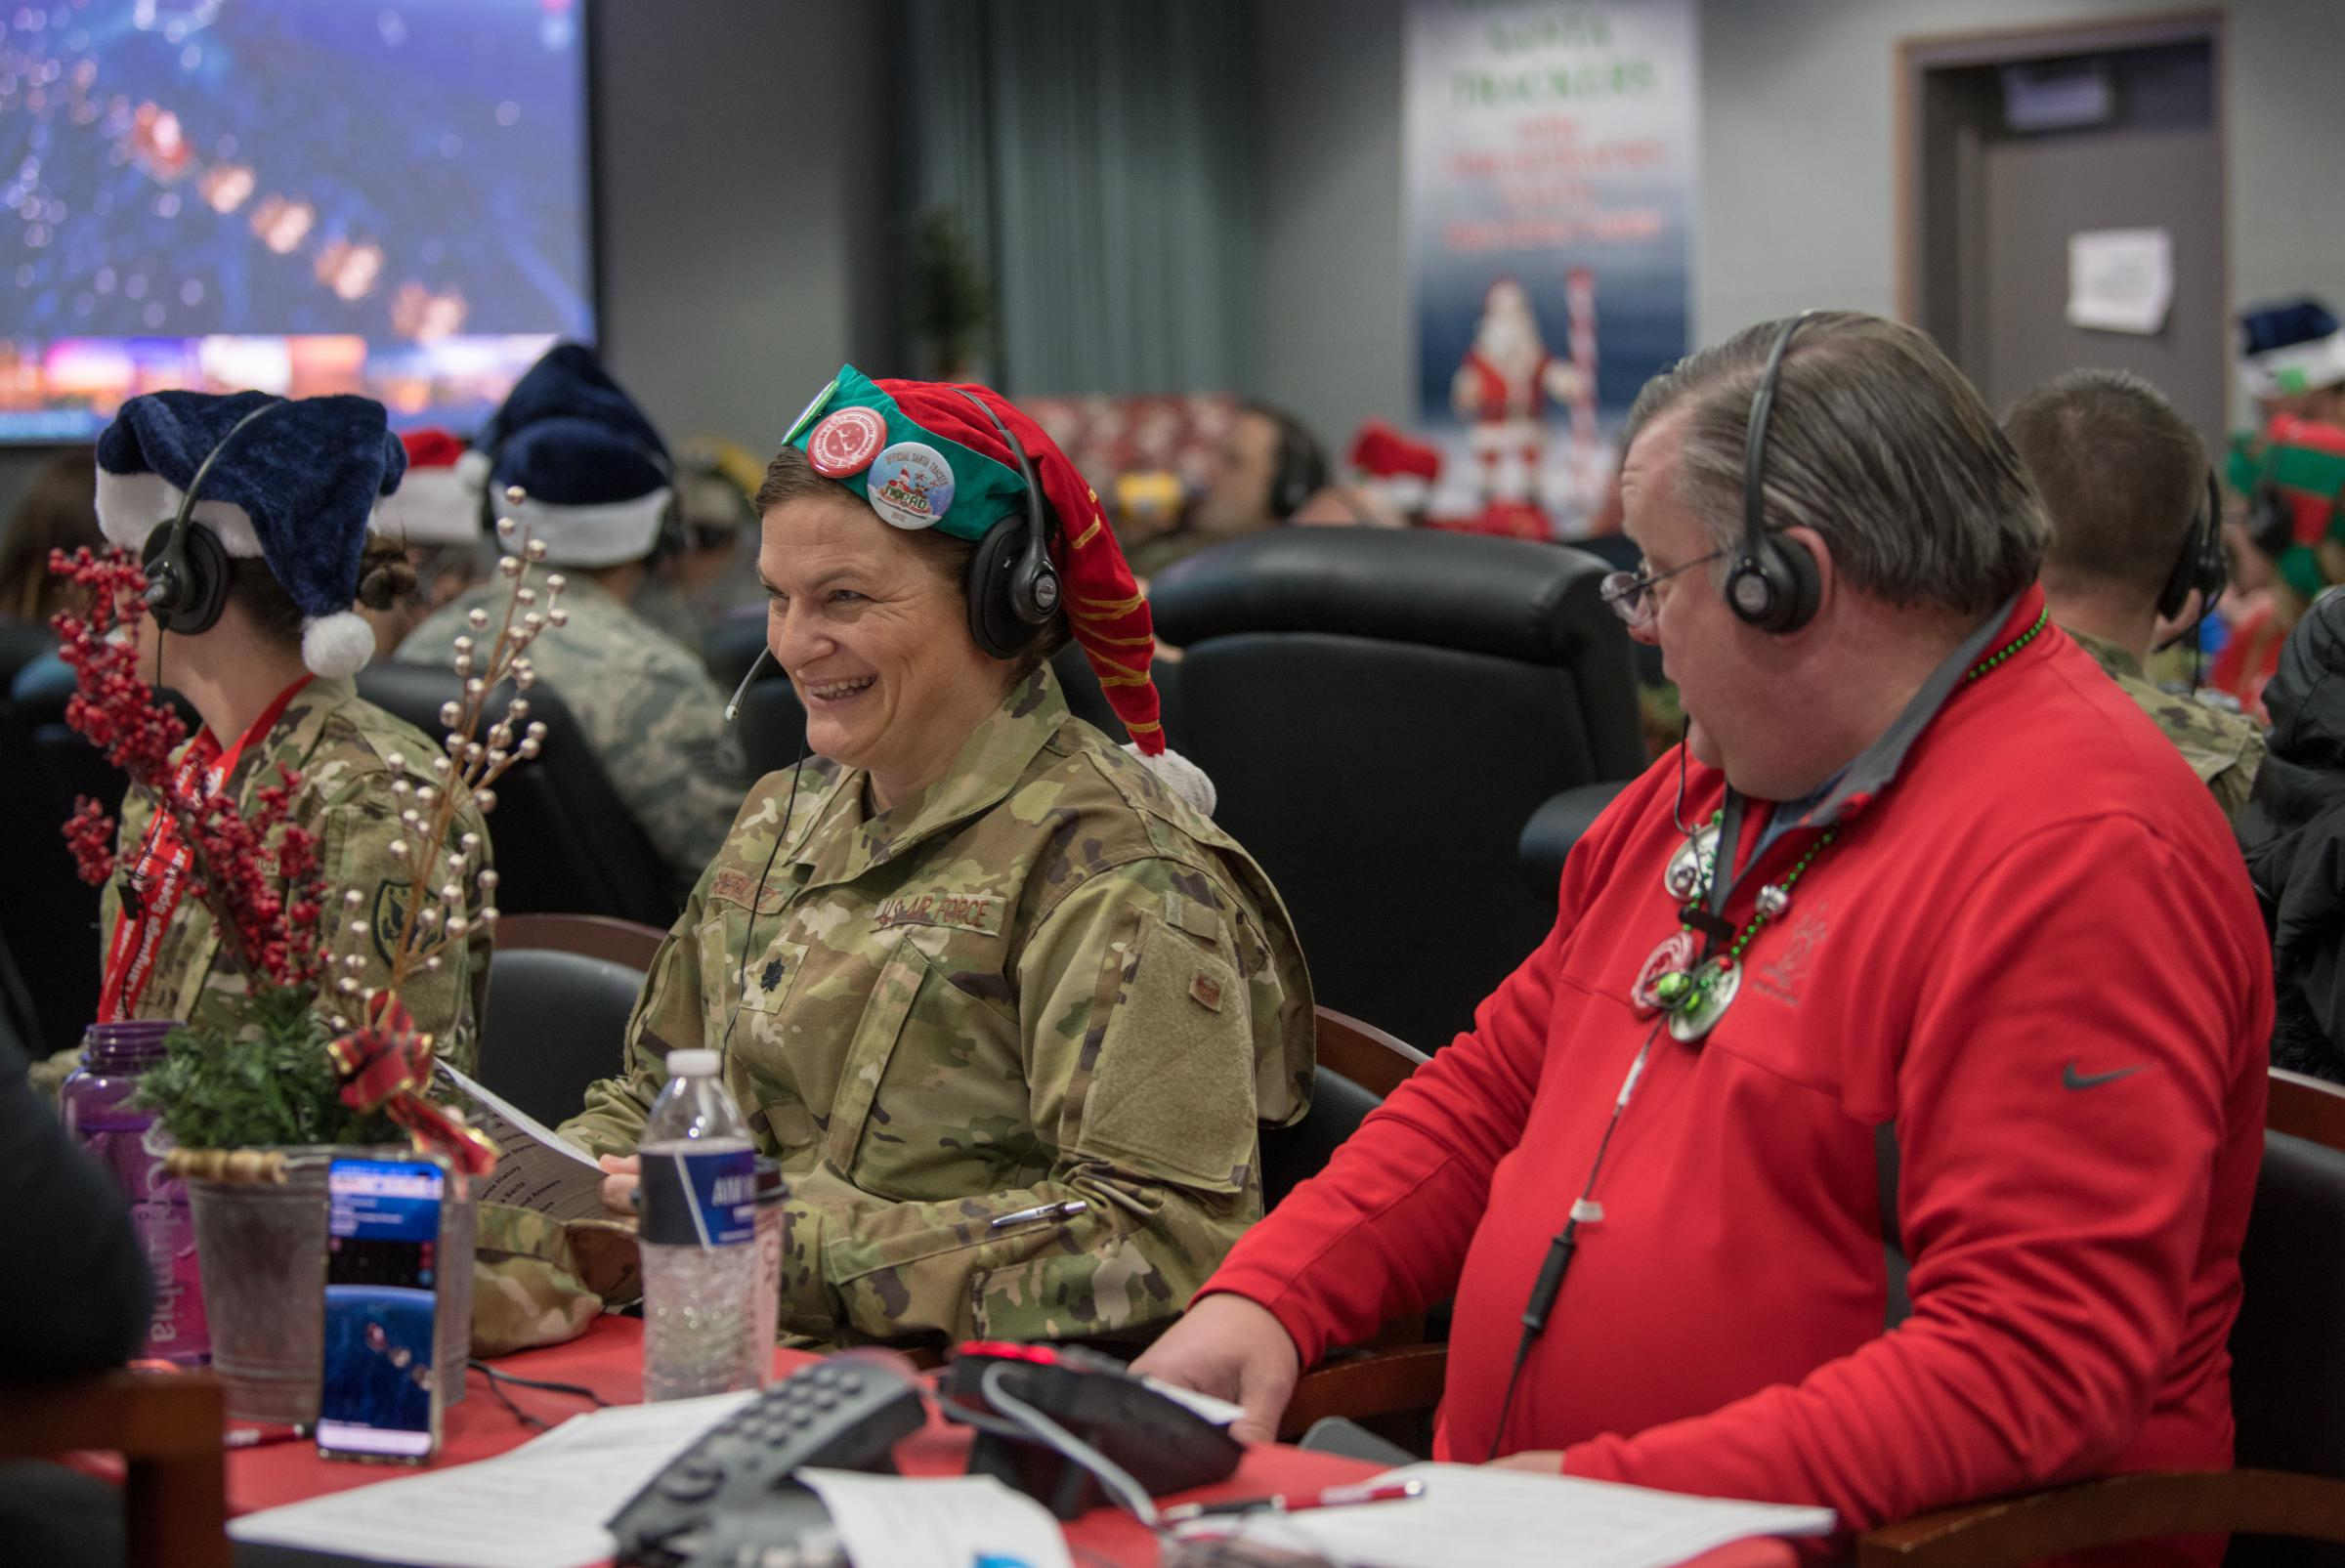 Air Force personnel work with volunteers to answer calls to NORAD's Santa tracking hotline on Christmas Eve 2019. This year, the operation has been scaled back, but is still running, because of the COVID-19 pandemic.